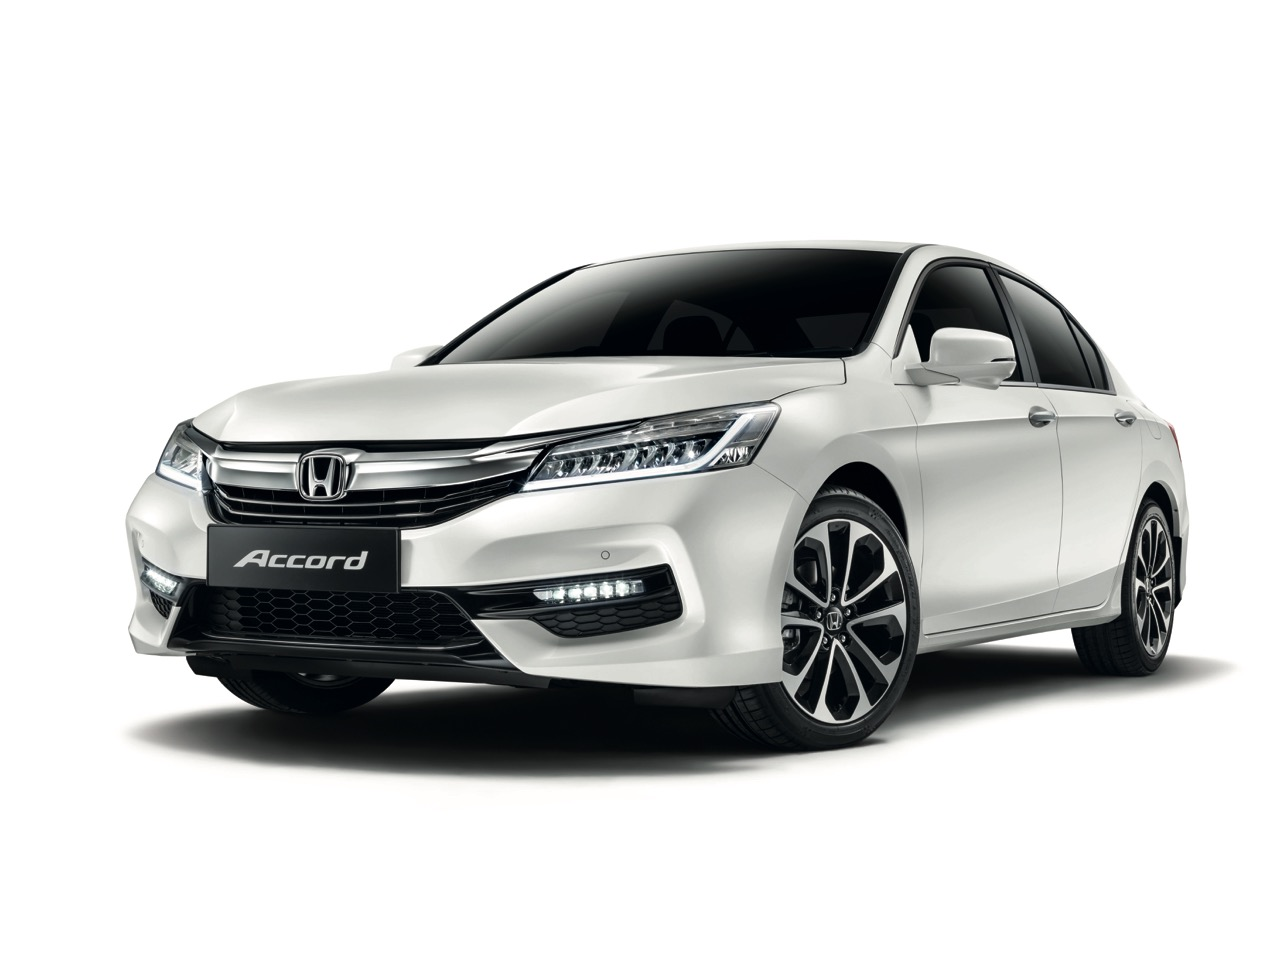 New 2016 honda accord is open for booking now autoworld for New honda accord 2016